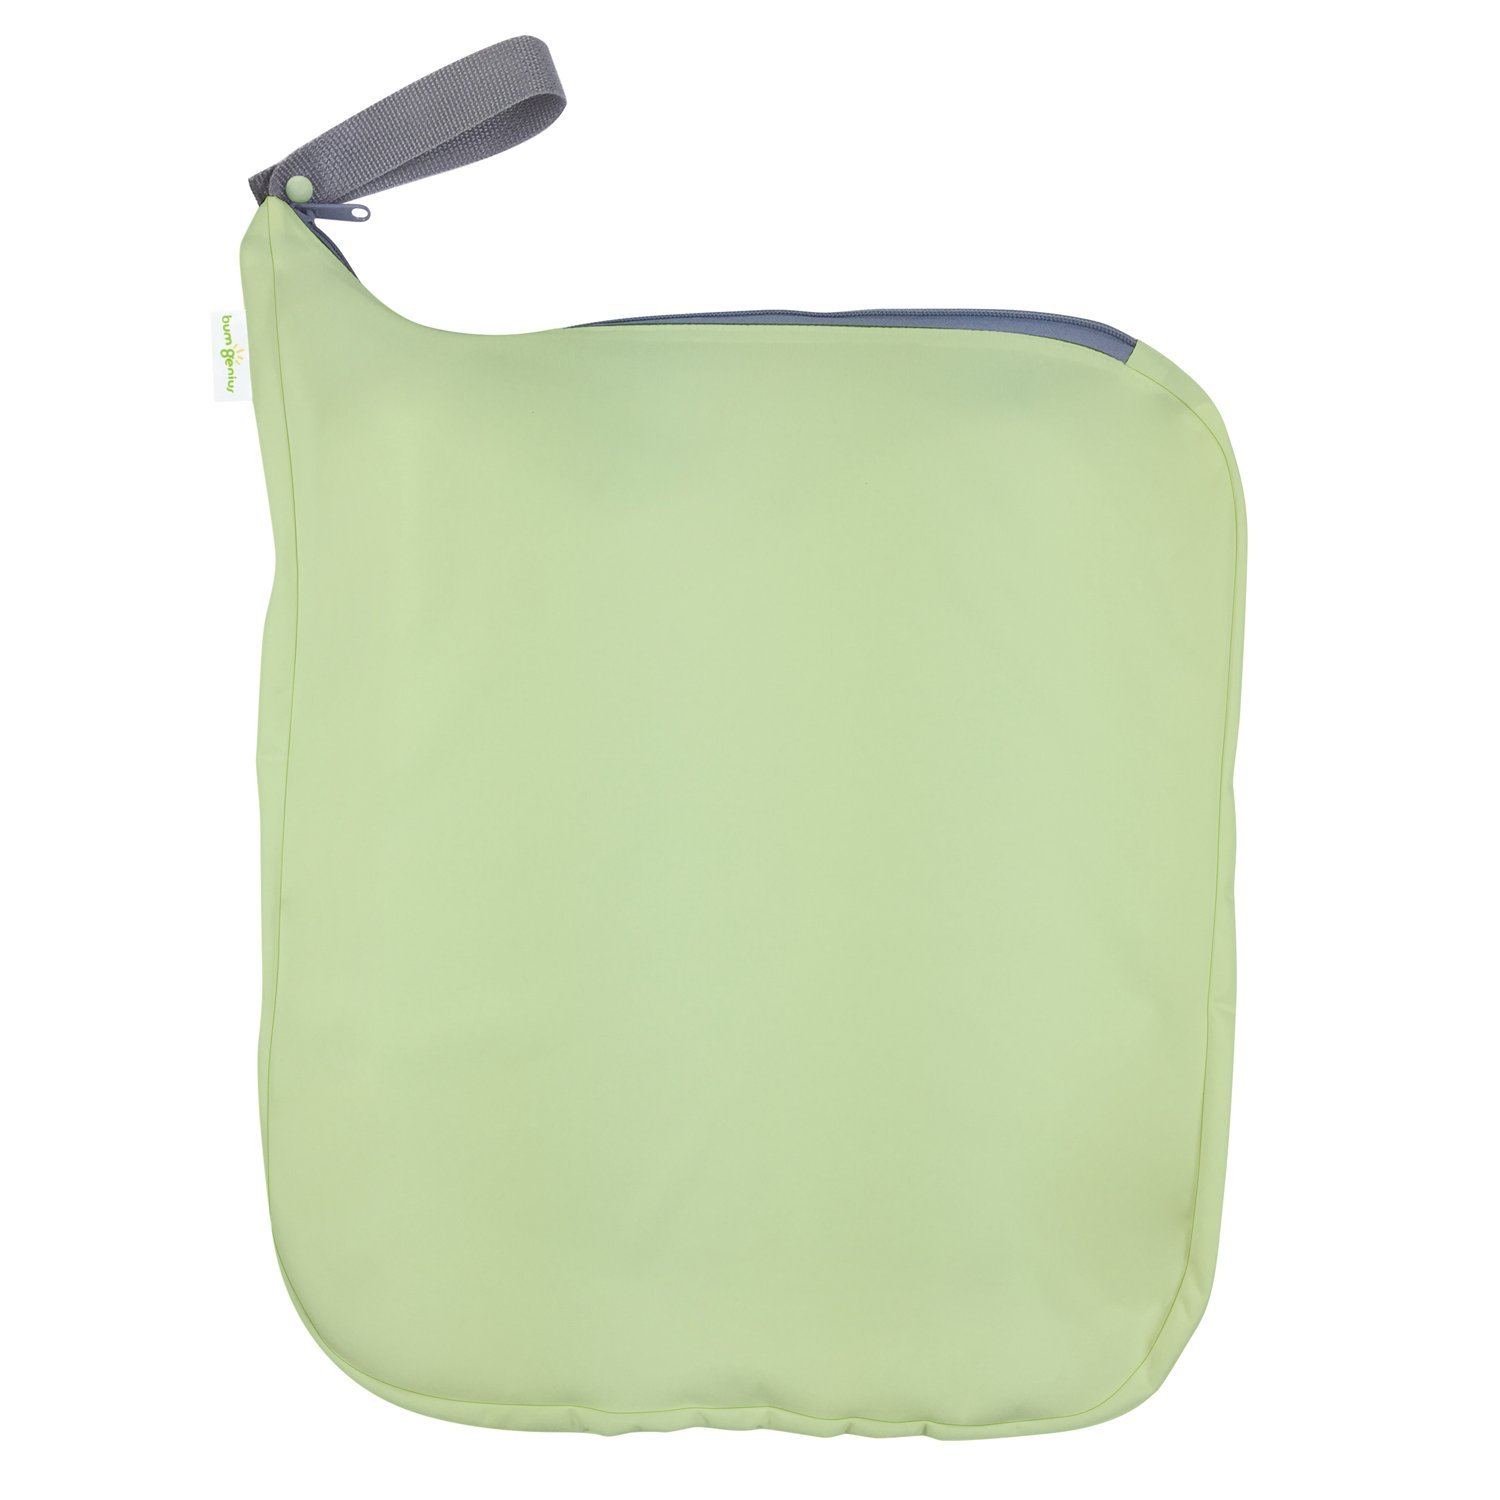 bumGenius Weekender Wet Bag - Holds 6 to 10 Diapers (Grasshopper) by bumGenius